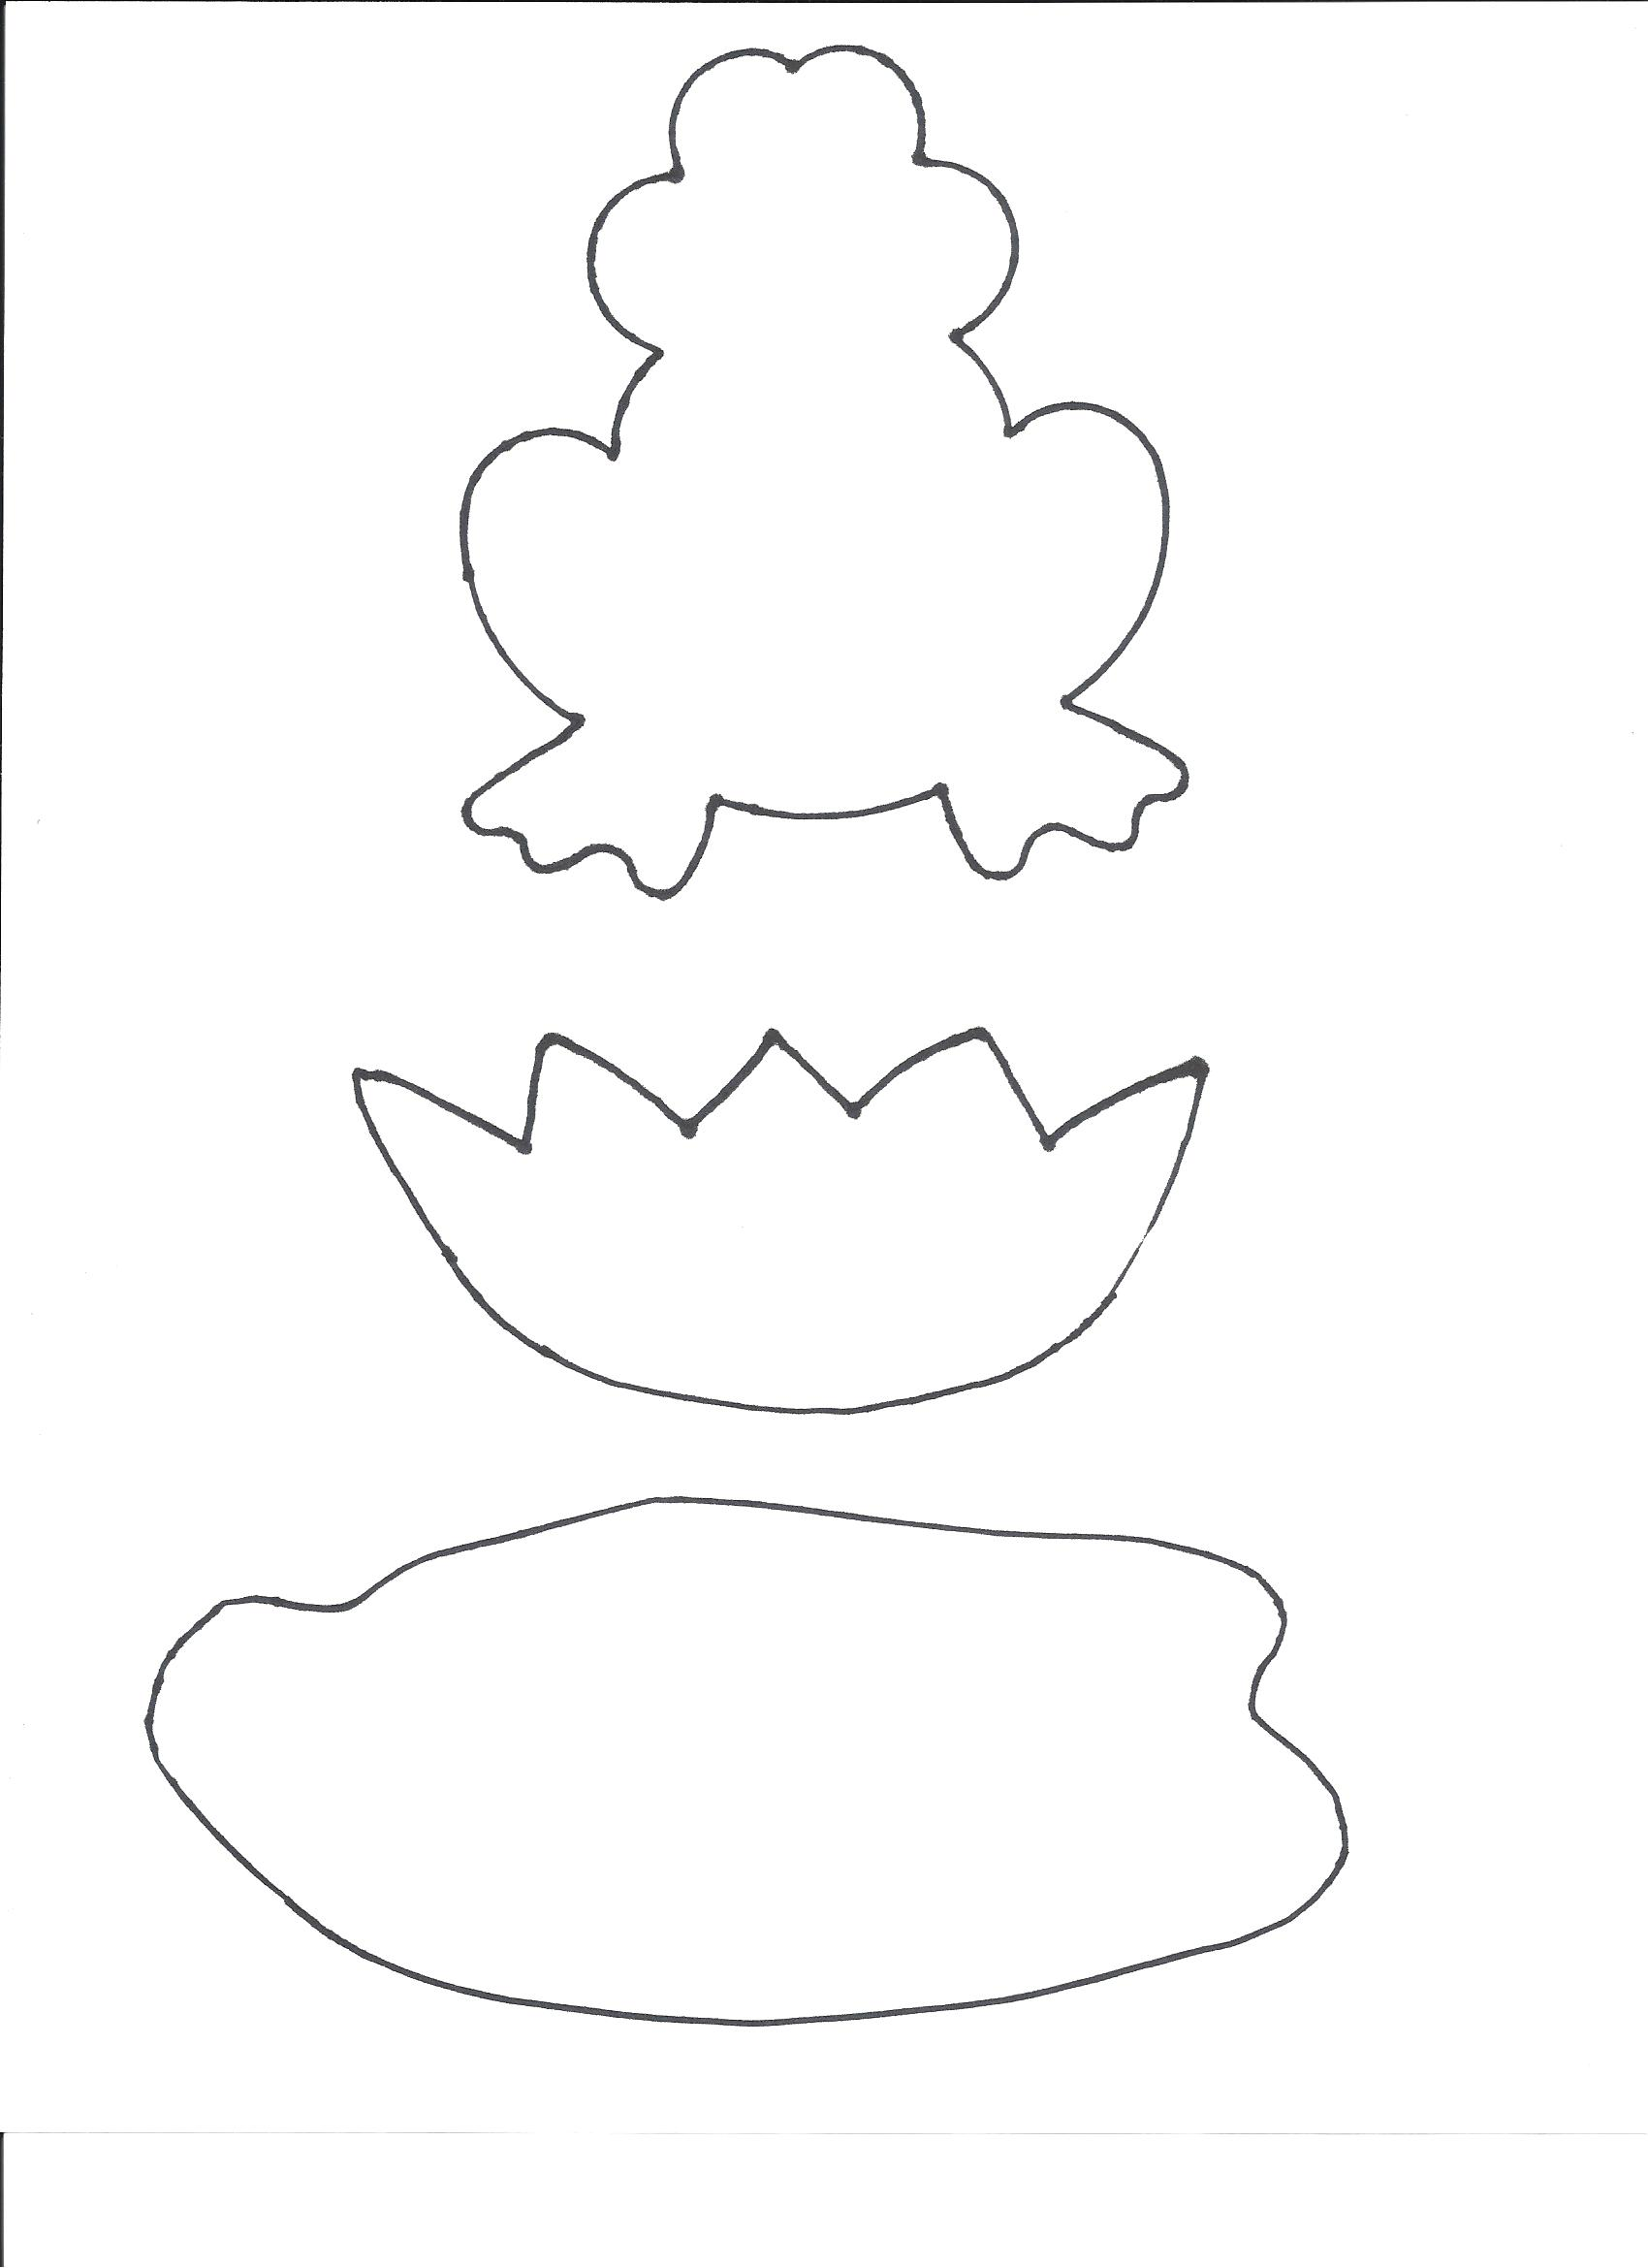 Free Lily Pad Template, Download Free Clip Art, Free Clip